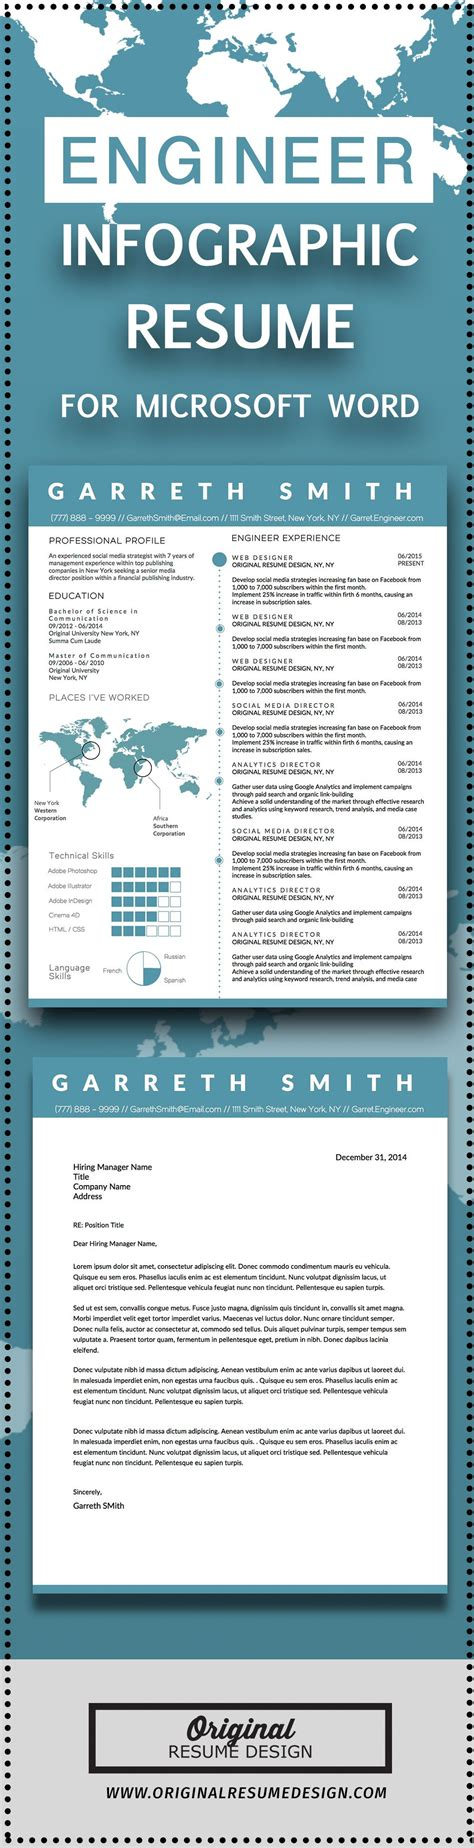 template sample resume for 6 months experience fresh software